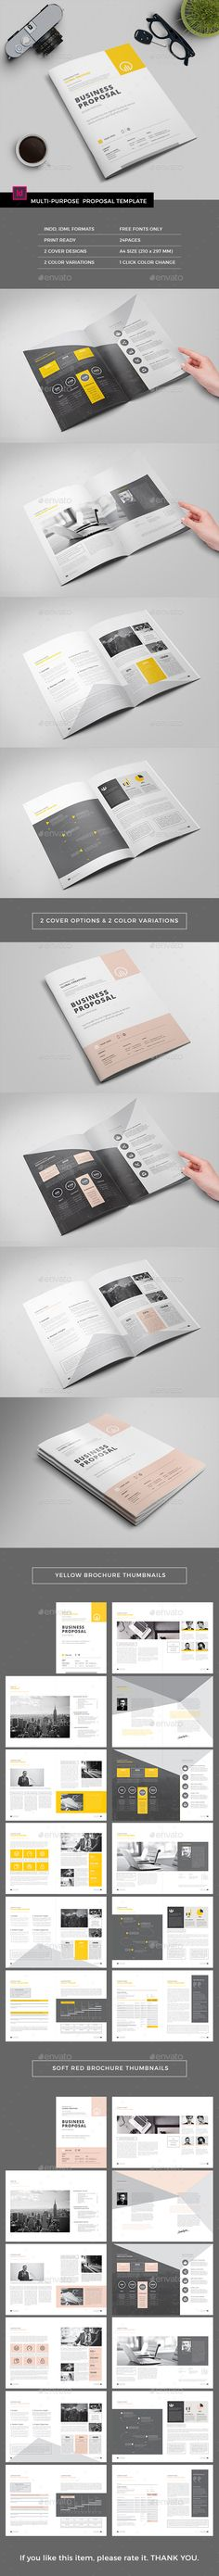 Travel Agency Bifold \/ Halffold Brochure 2 Brochures, Ai - travel proposal template